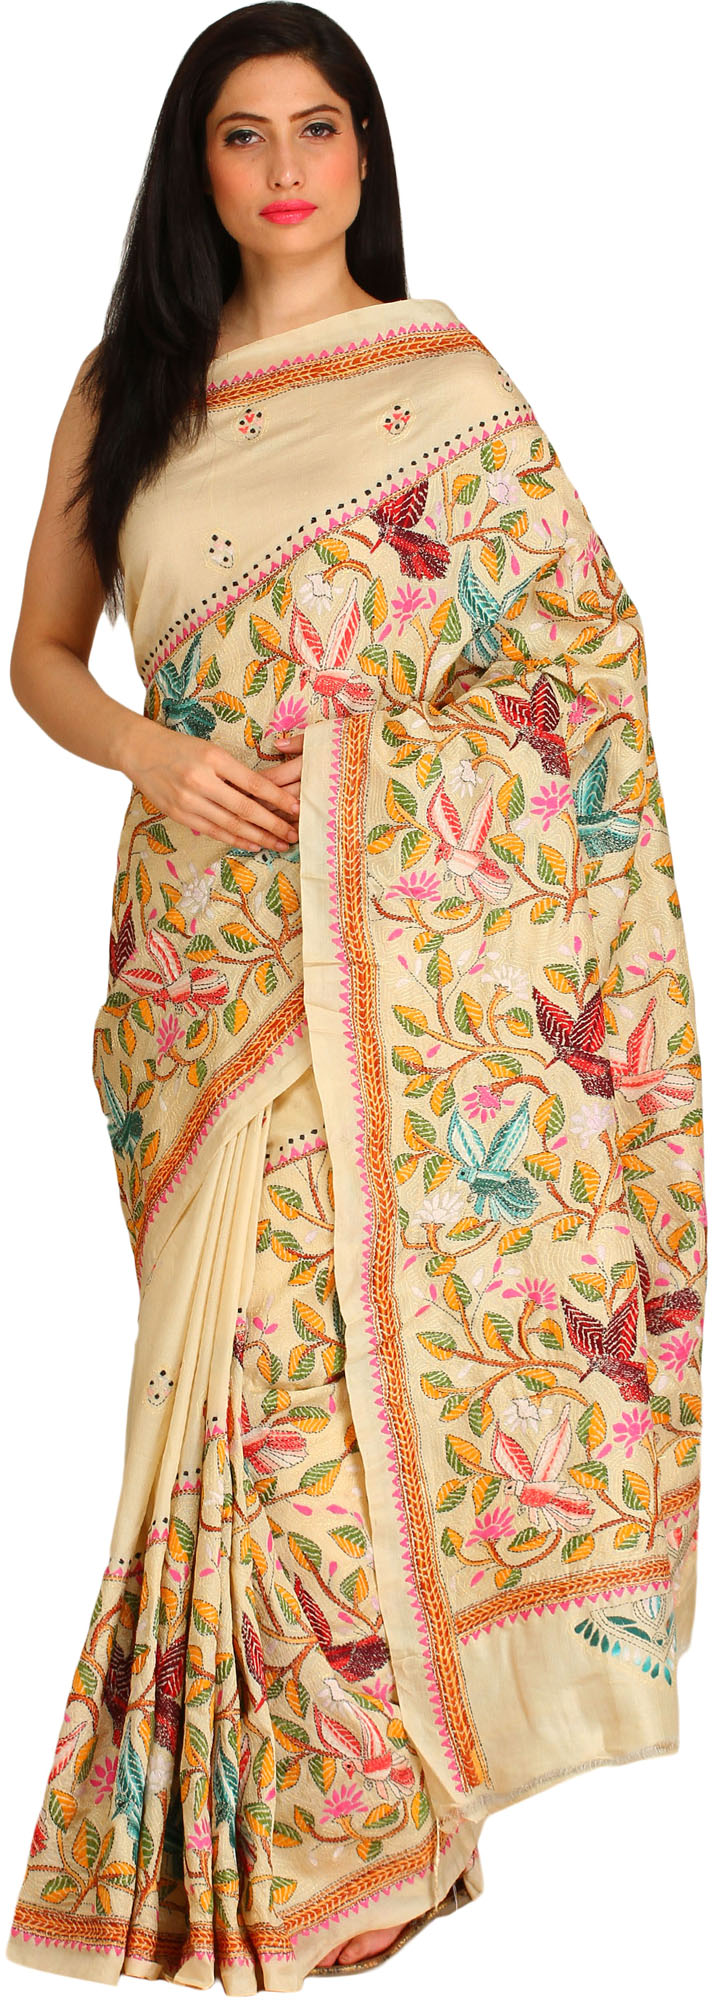 Almond oil sari from kolkata with kantha hand embroidered